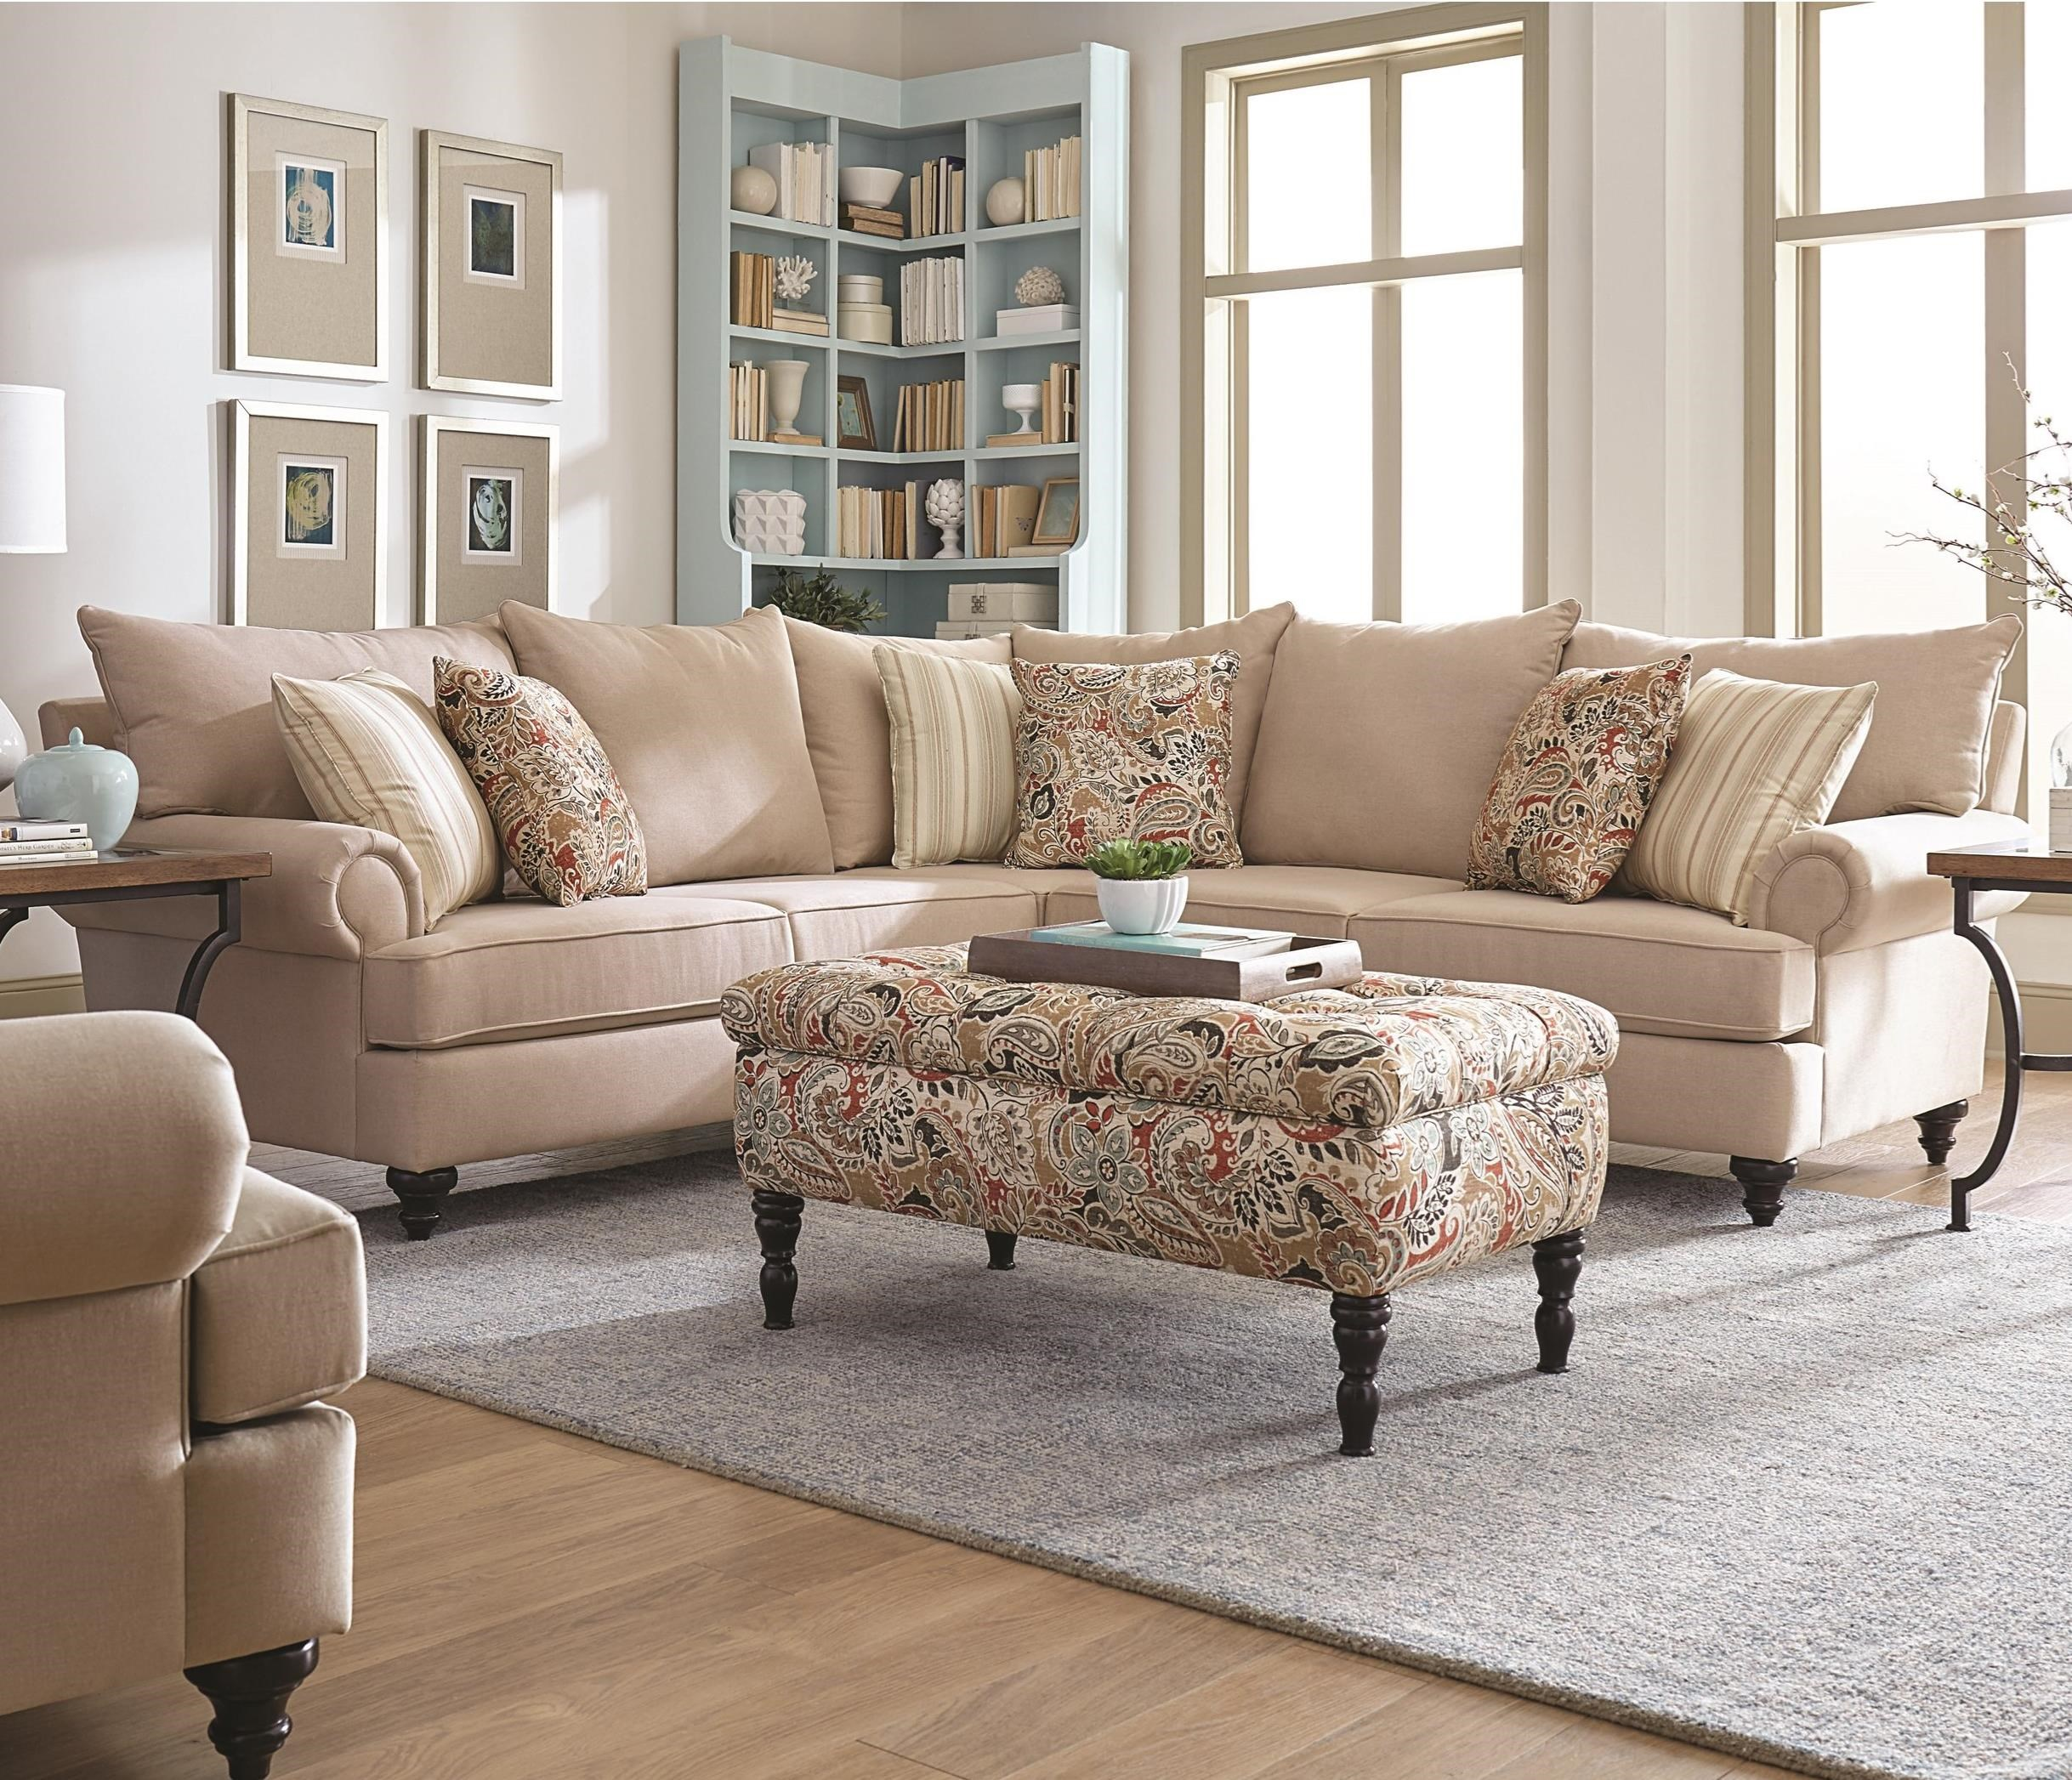 Rosalie Sectional Sofa by England at Suburban Furniture